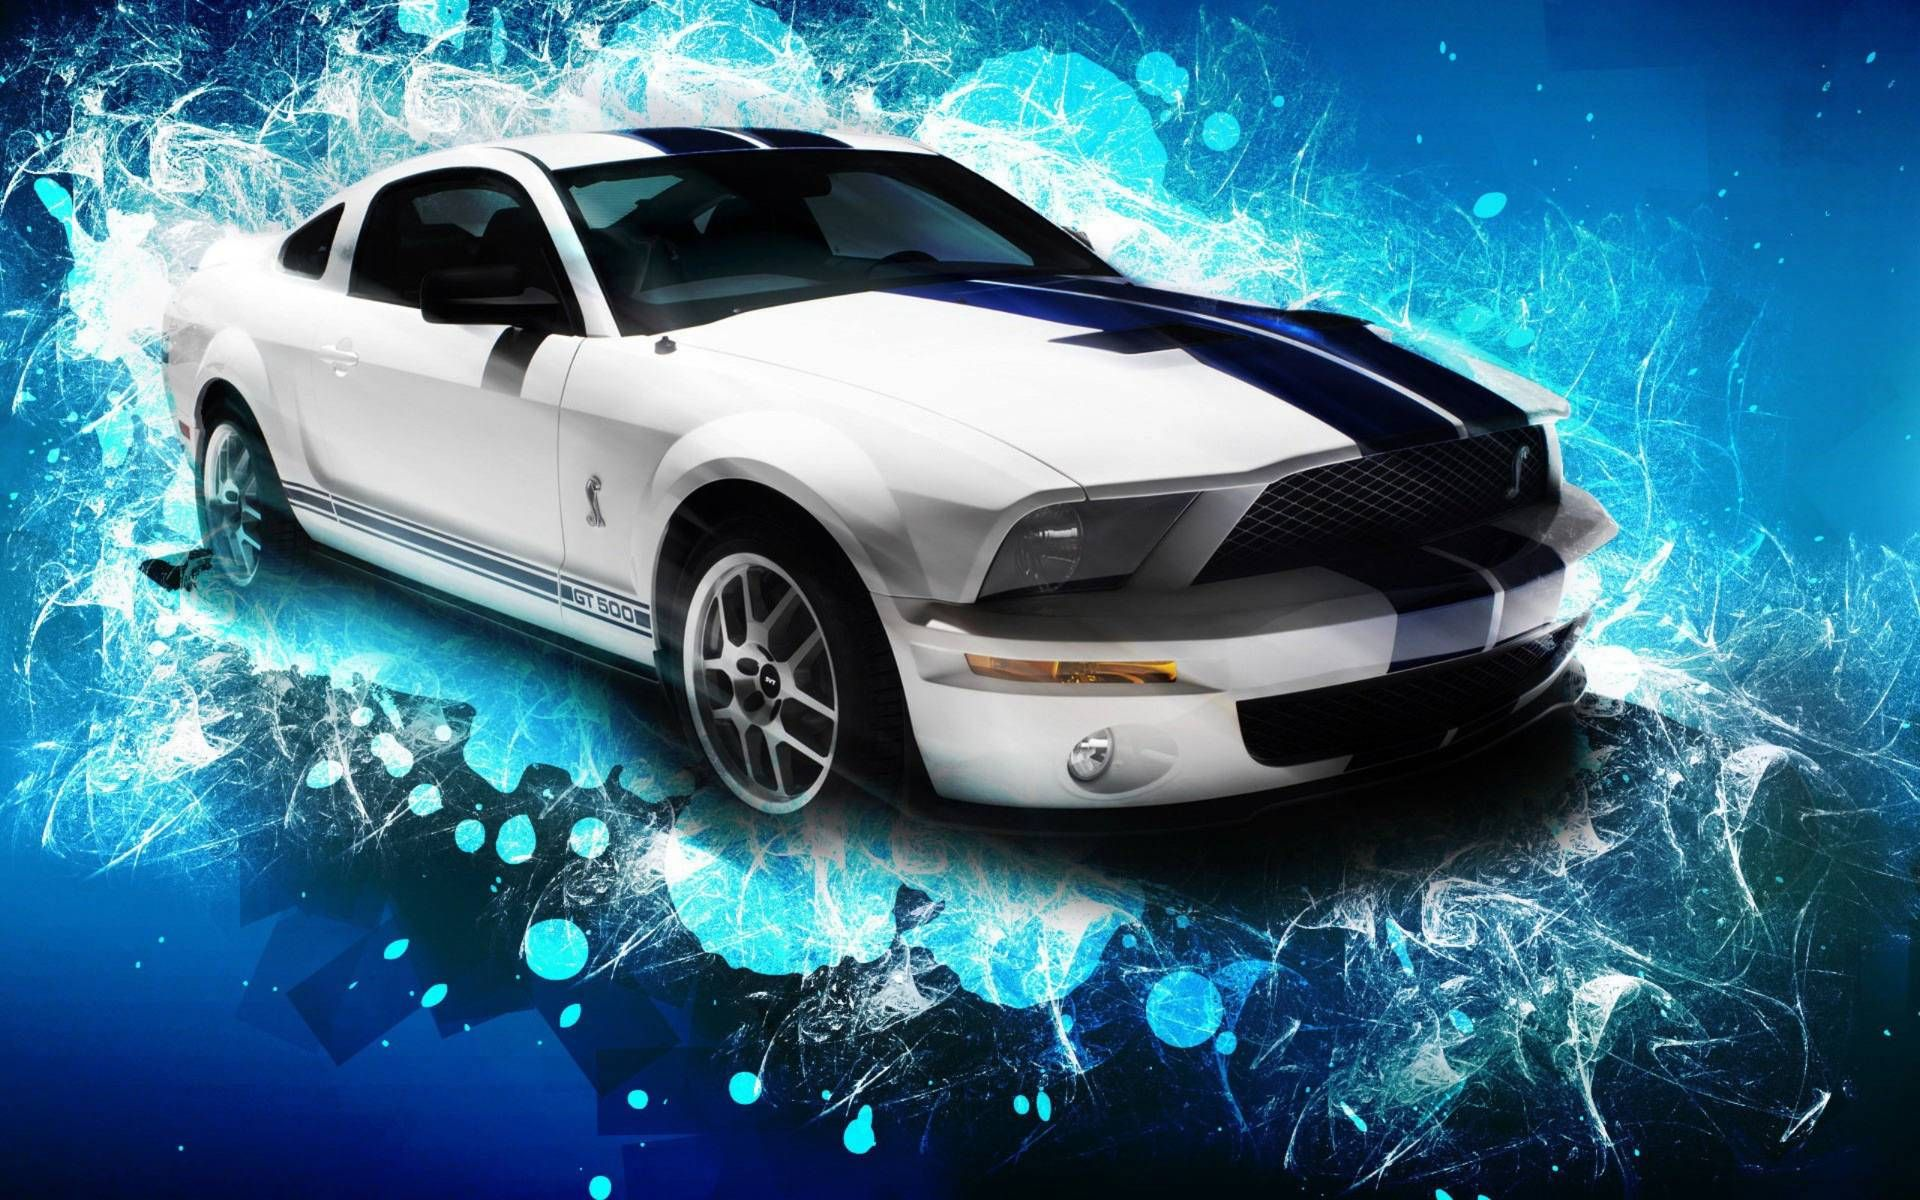 3 D Walpeper Ford Mustang Car 3d Widescreen Hd Wallpaper Ford Mustang Gt500 Car Wallpapers Mustang Wallpaper